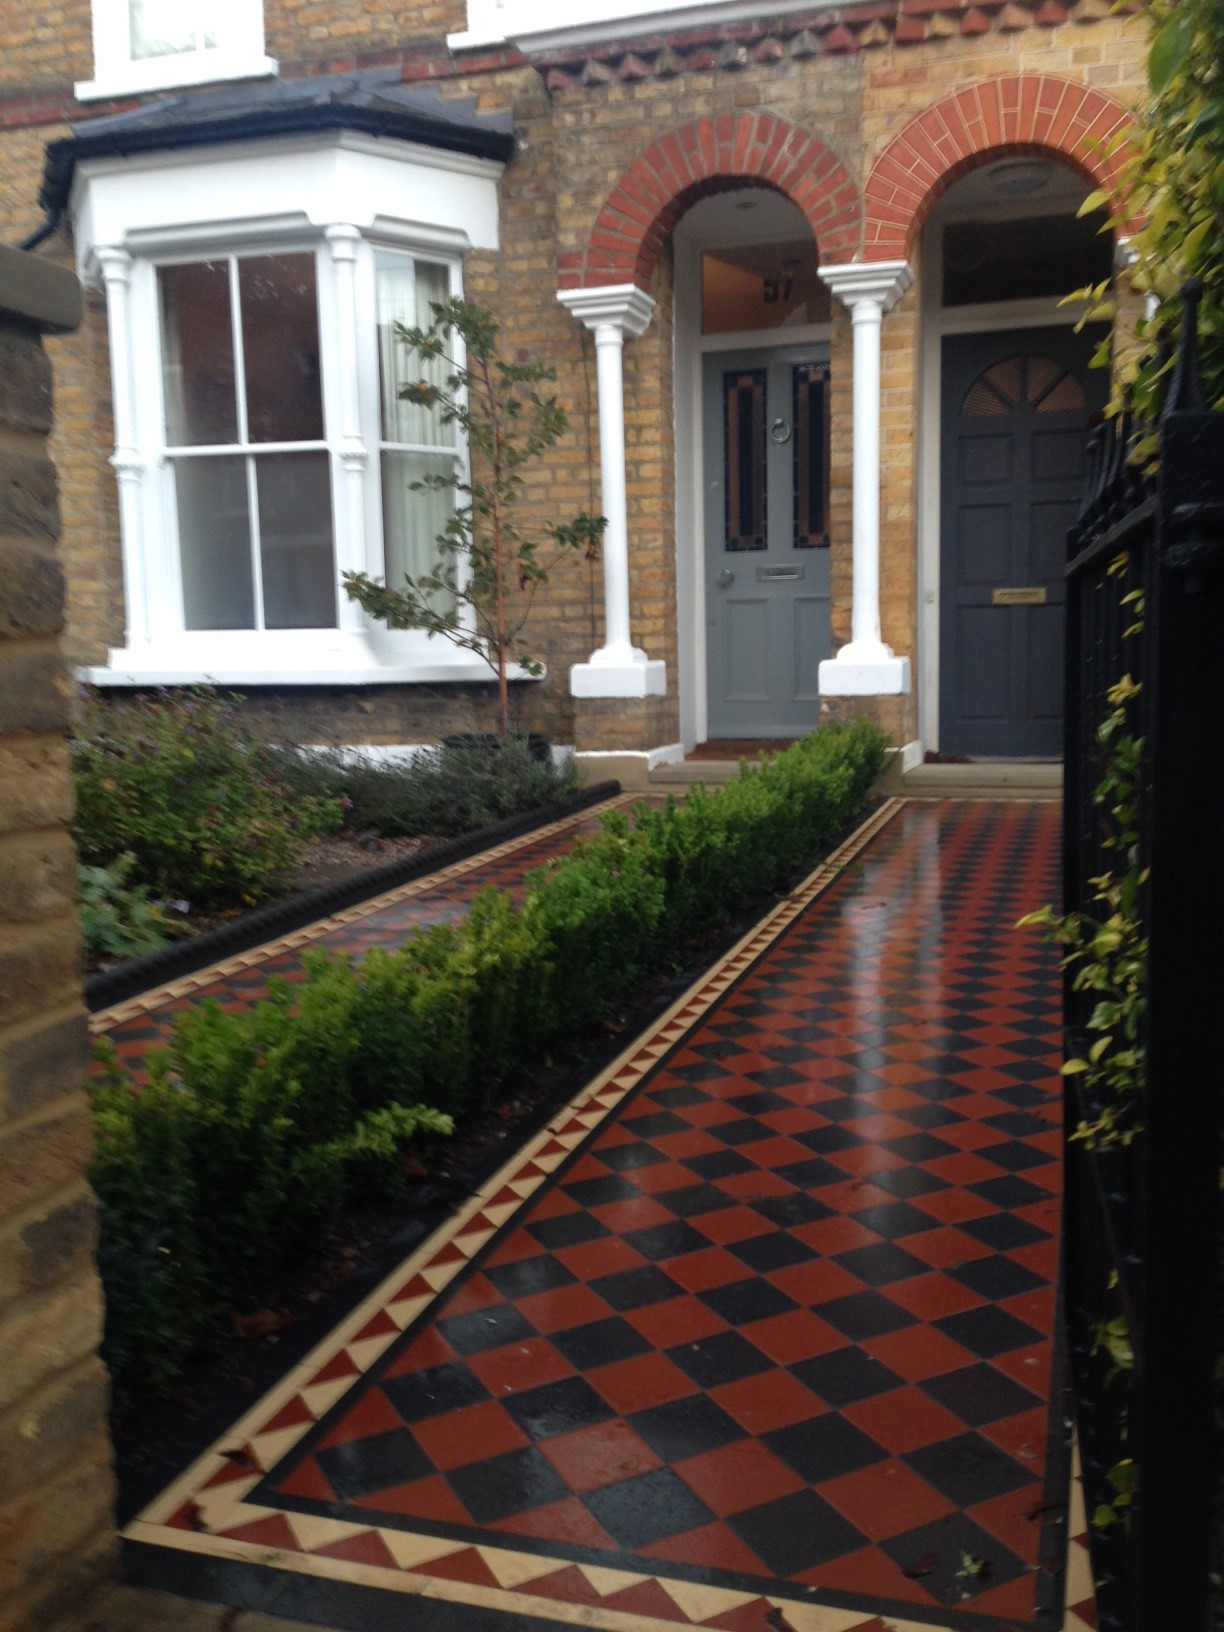 Brixton Herne Hill Victorian Mosaic Tile Path black and red tile with Yorkstone pier cap entrance stone and imperial yellow brick london stock wall (12)